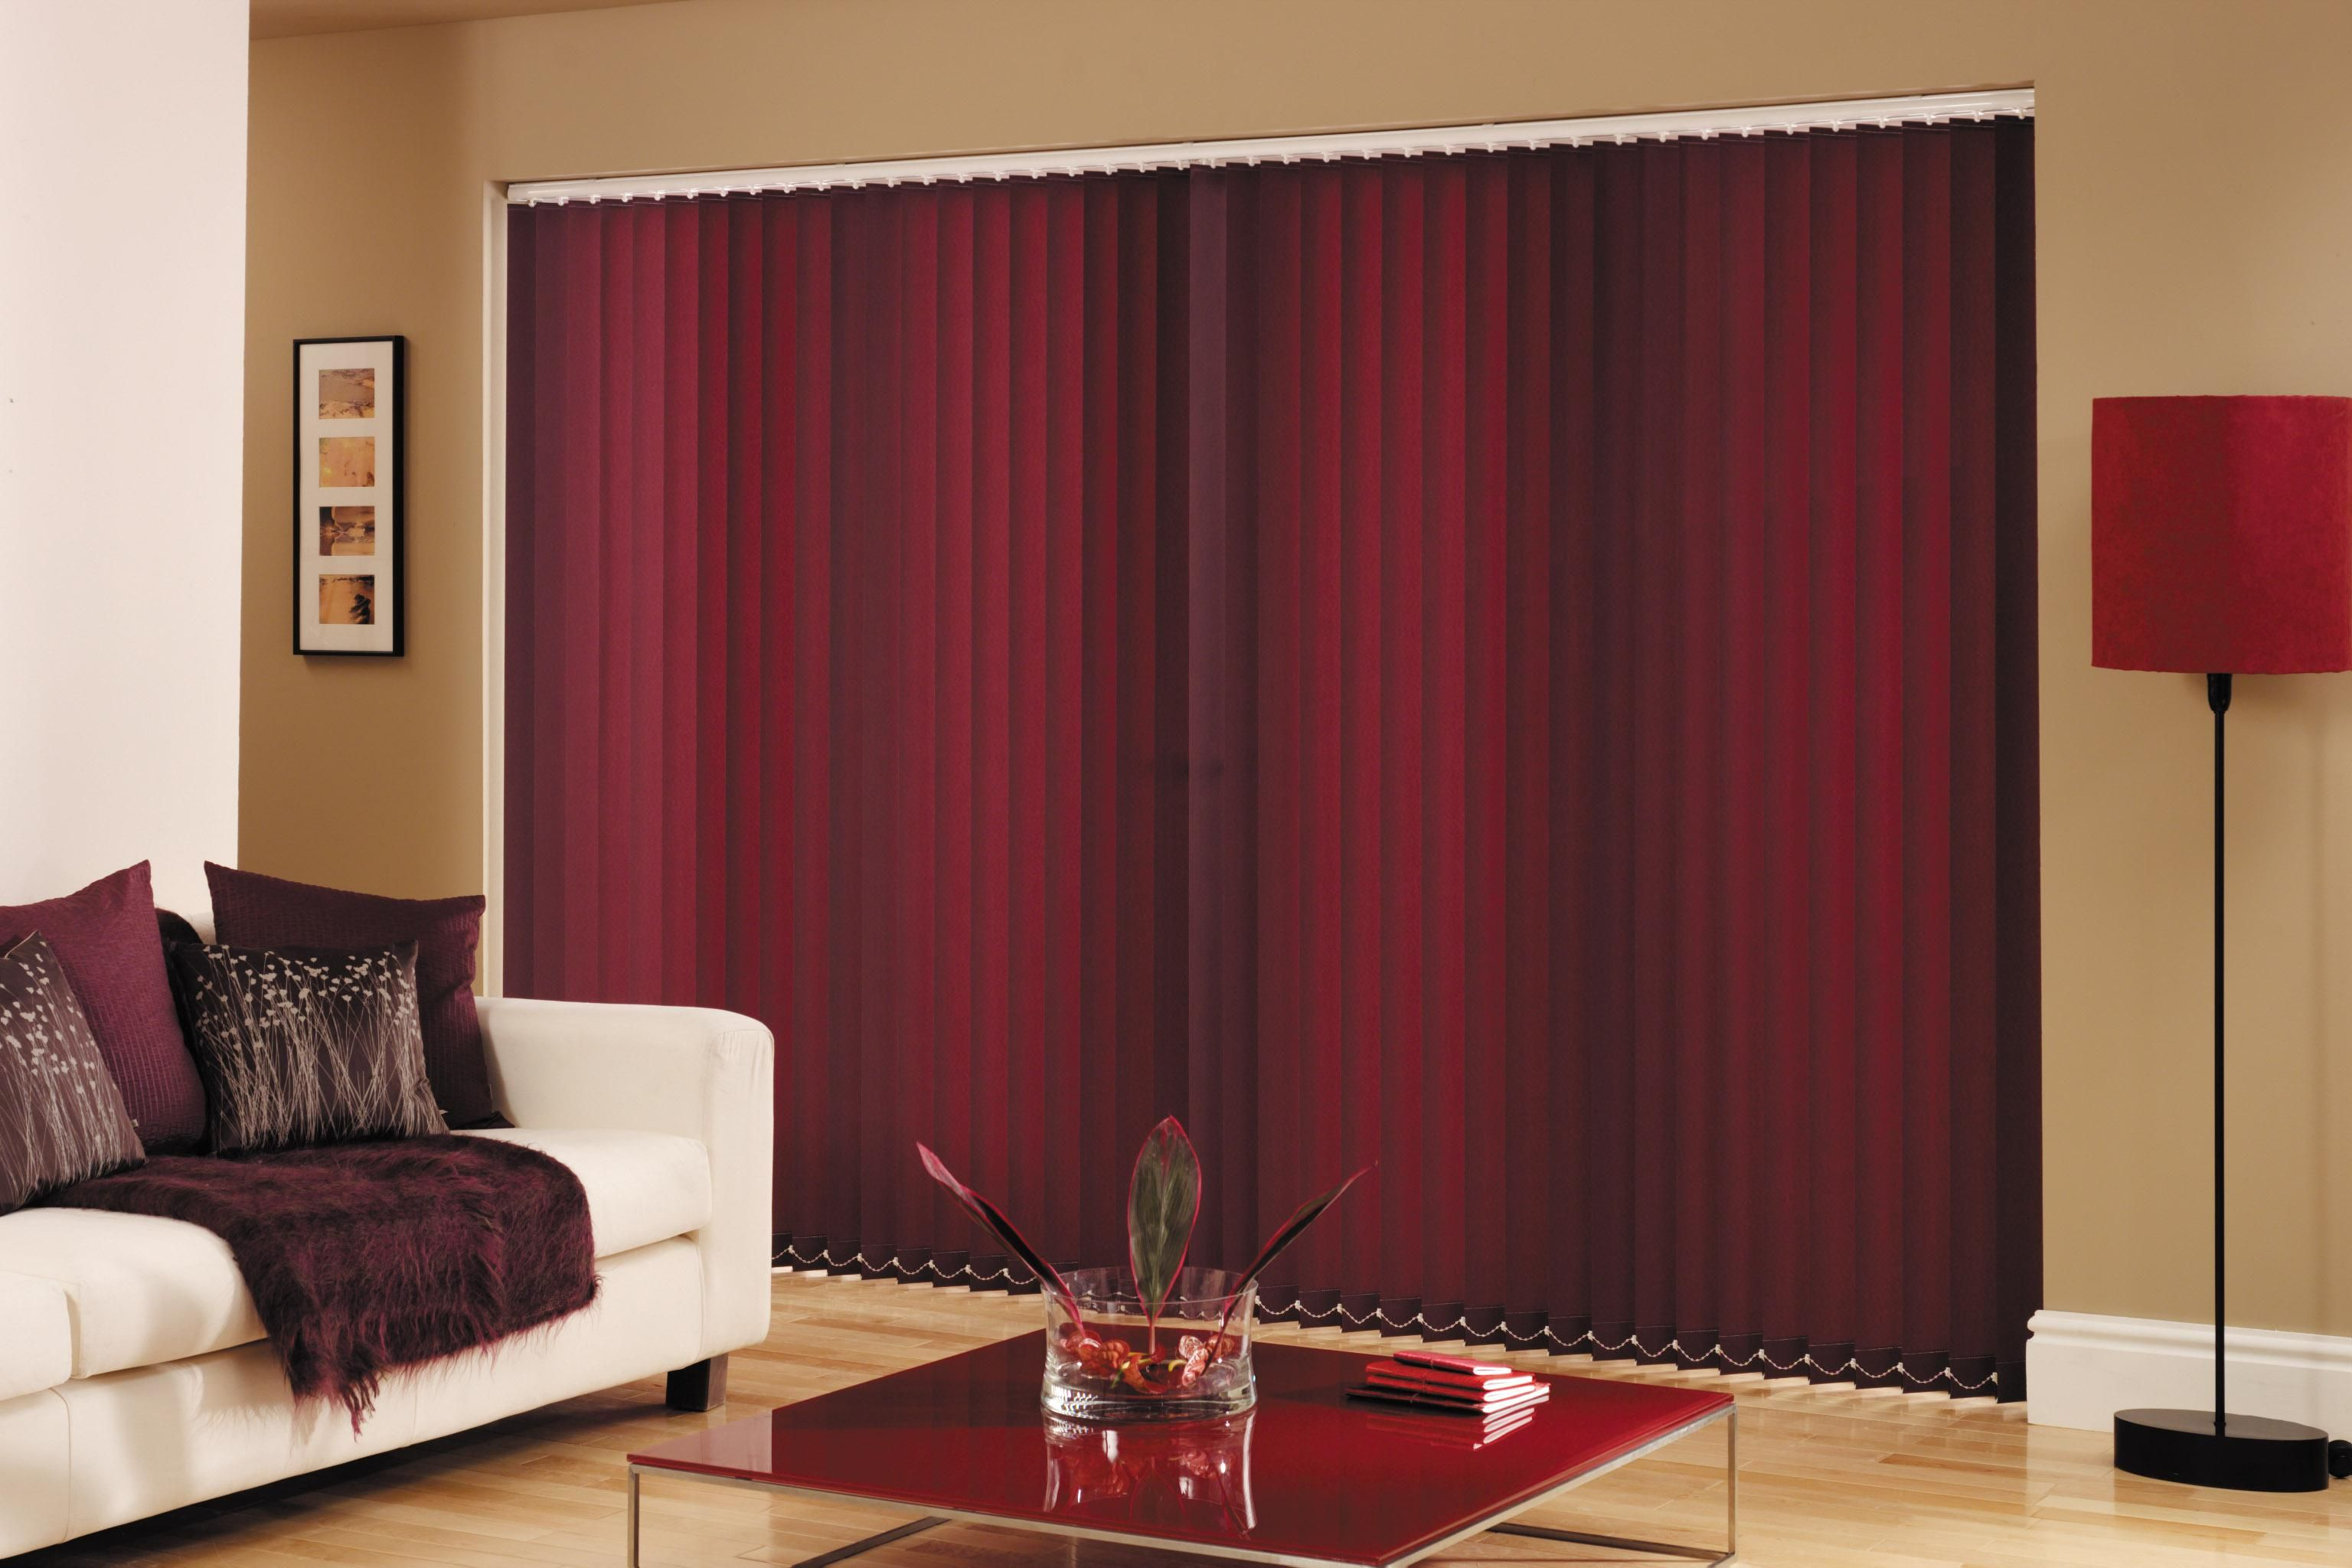 Exterior Interior Large Patio Door Covering With Vertical Red